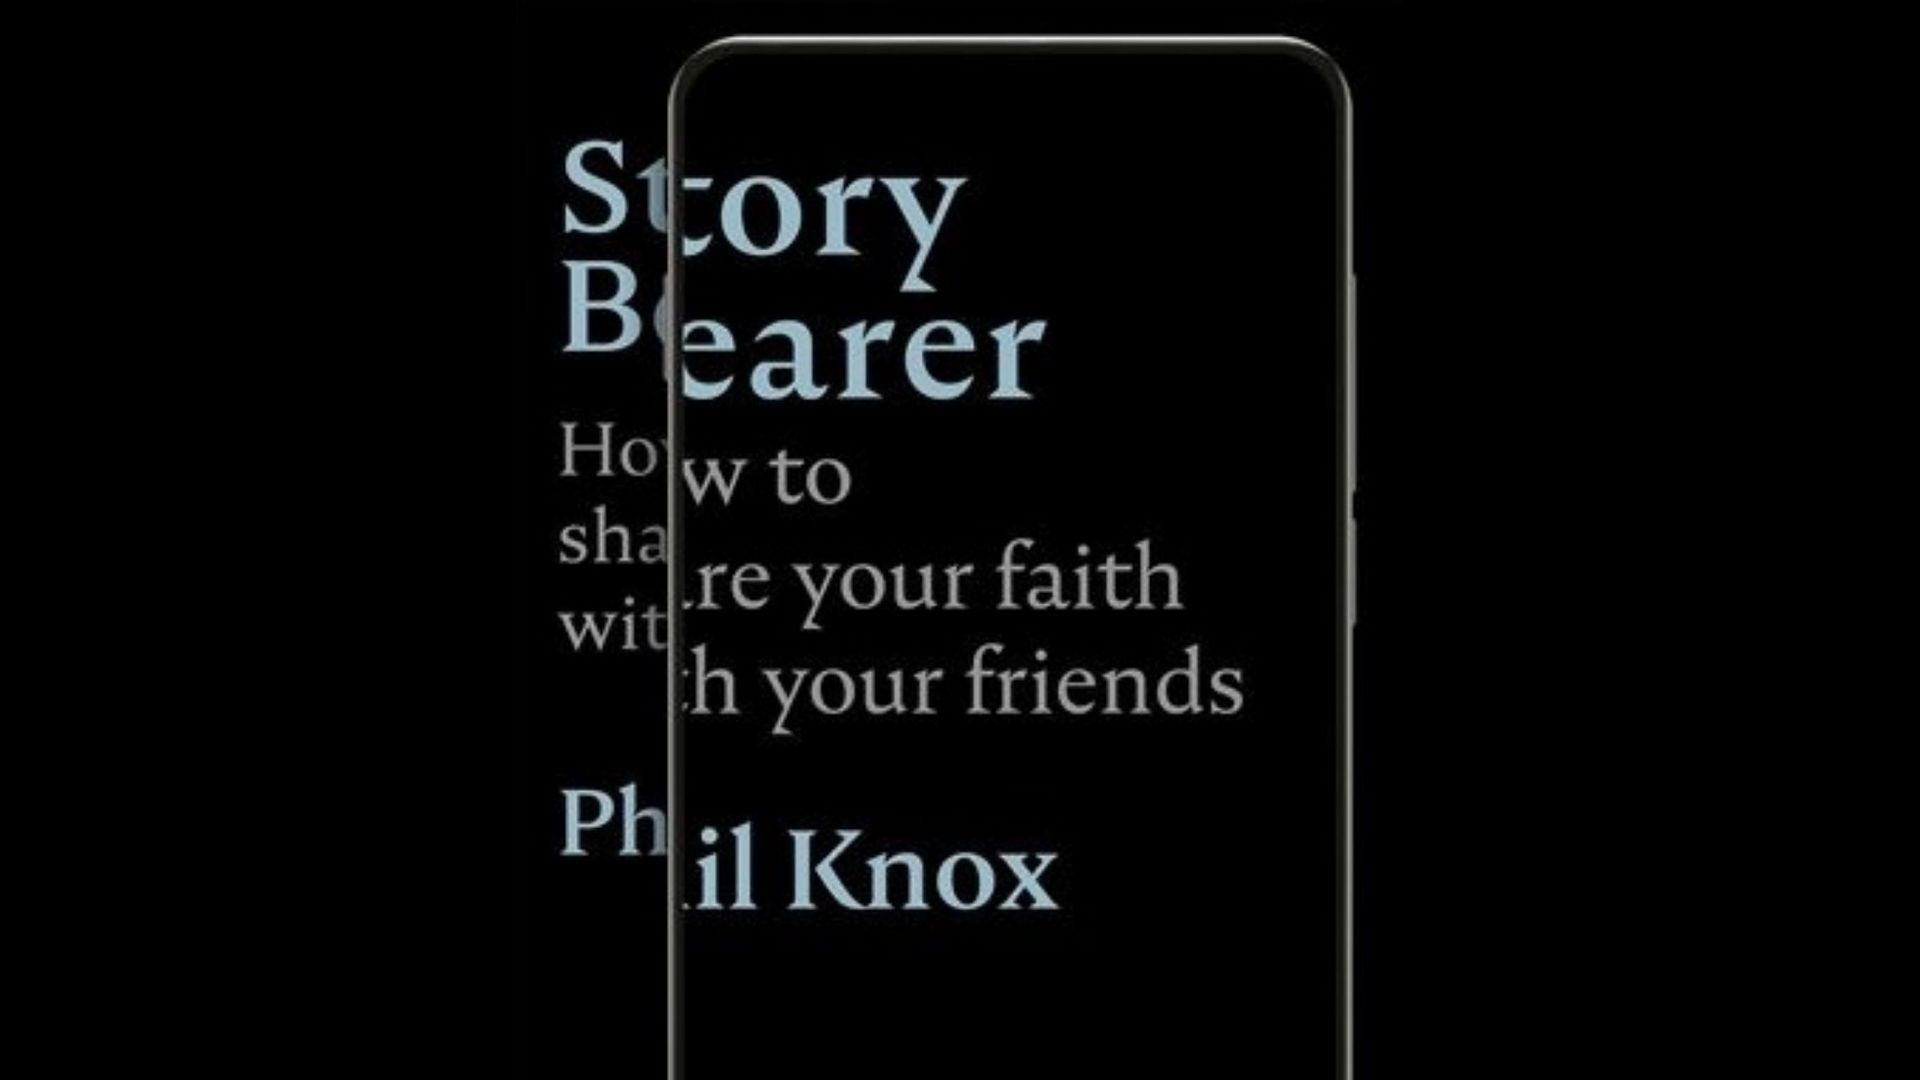 A review of 'Story Bearer', a book on sharing faith by Phil Knox